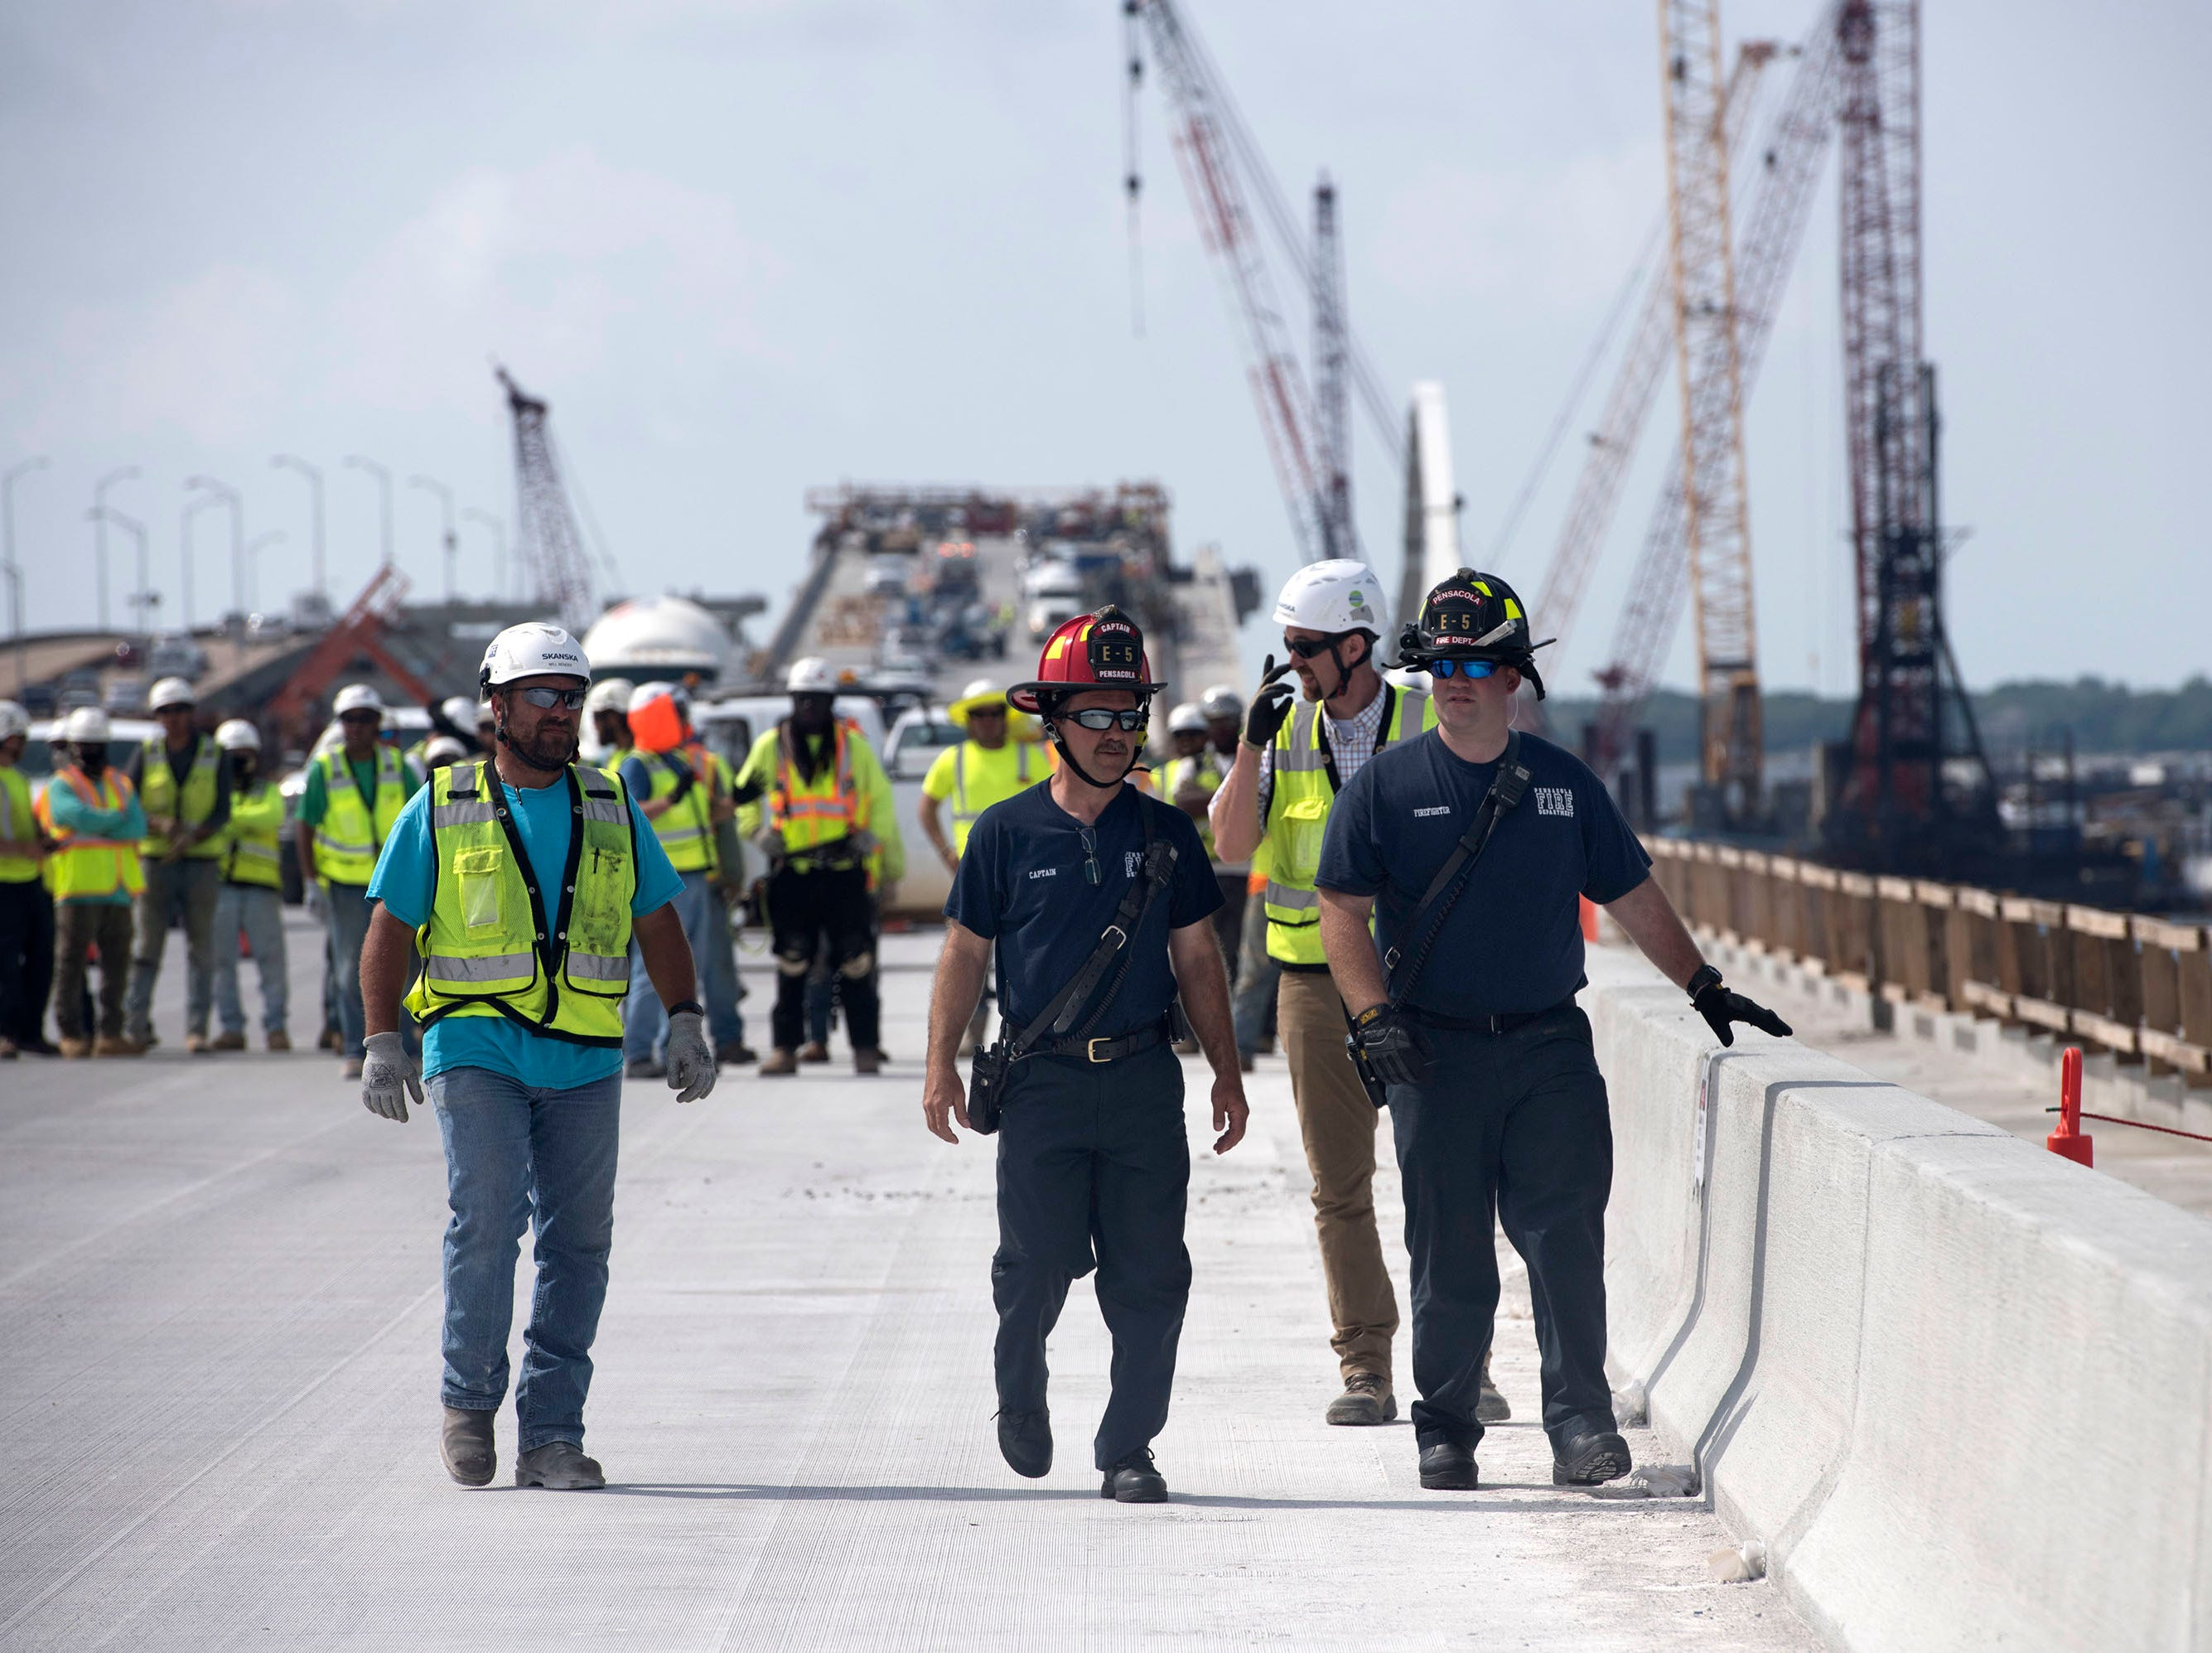 Skanska USA and members of the Pensacola Fire Dept., Escambia Fire Rescue, and the Gulf Breeze Volunteer Fire Dept. join forces to conduct a joint training exercise on the new Pensacola Bay Bridge under construction on Wednesday, May 8, 2019. The training exercise is part of the company's observance of National Safety Week.